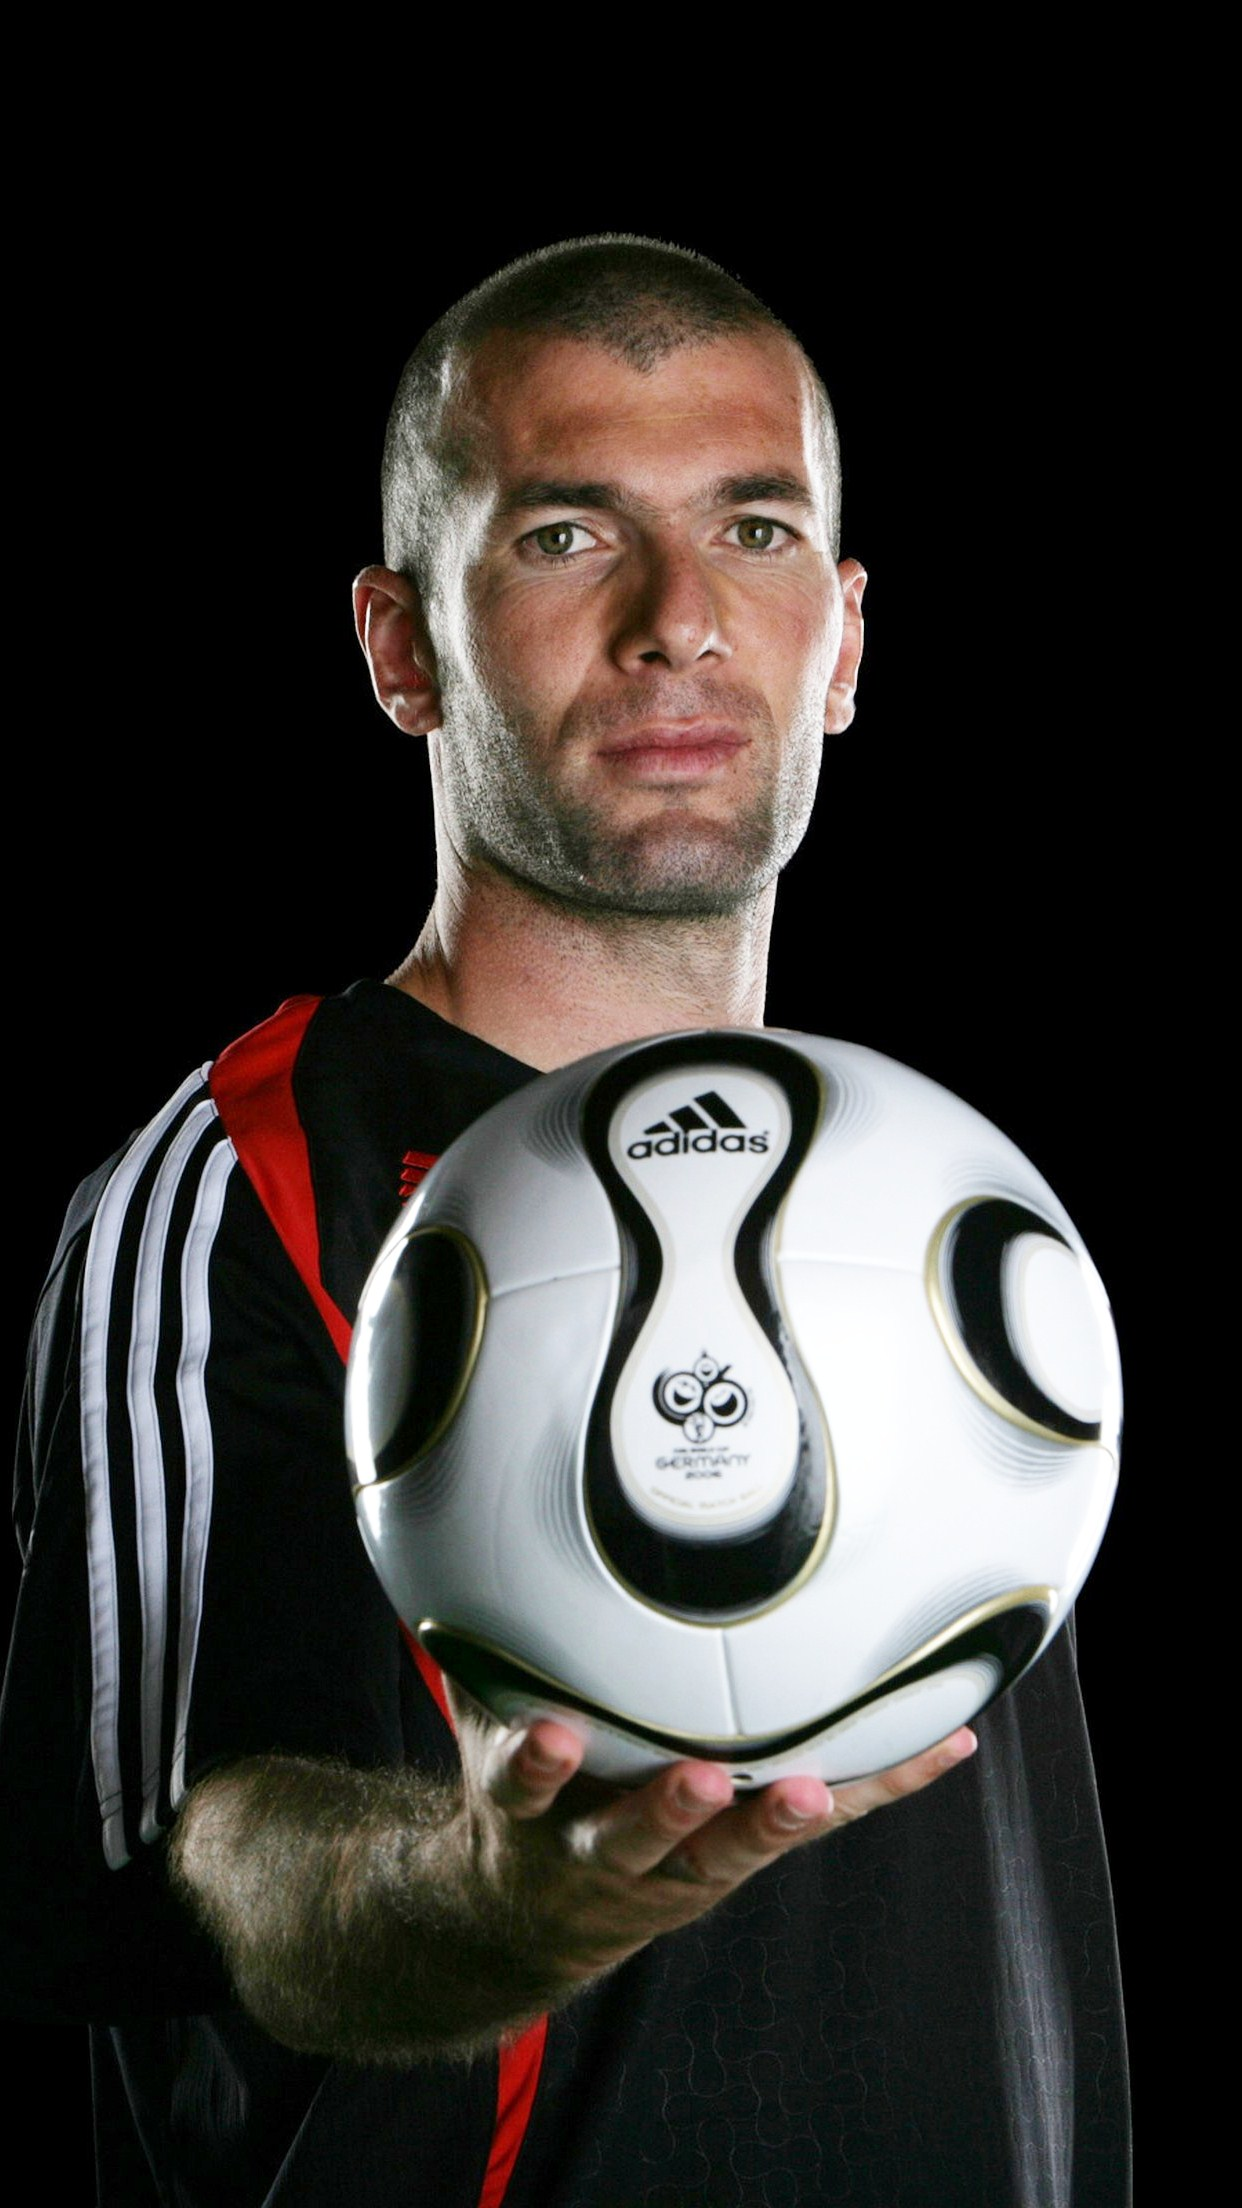 football zinedine zidane 3Wallpapers iPhone Parallax.jpg Football Zinédine Zidane